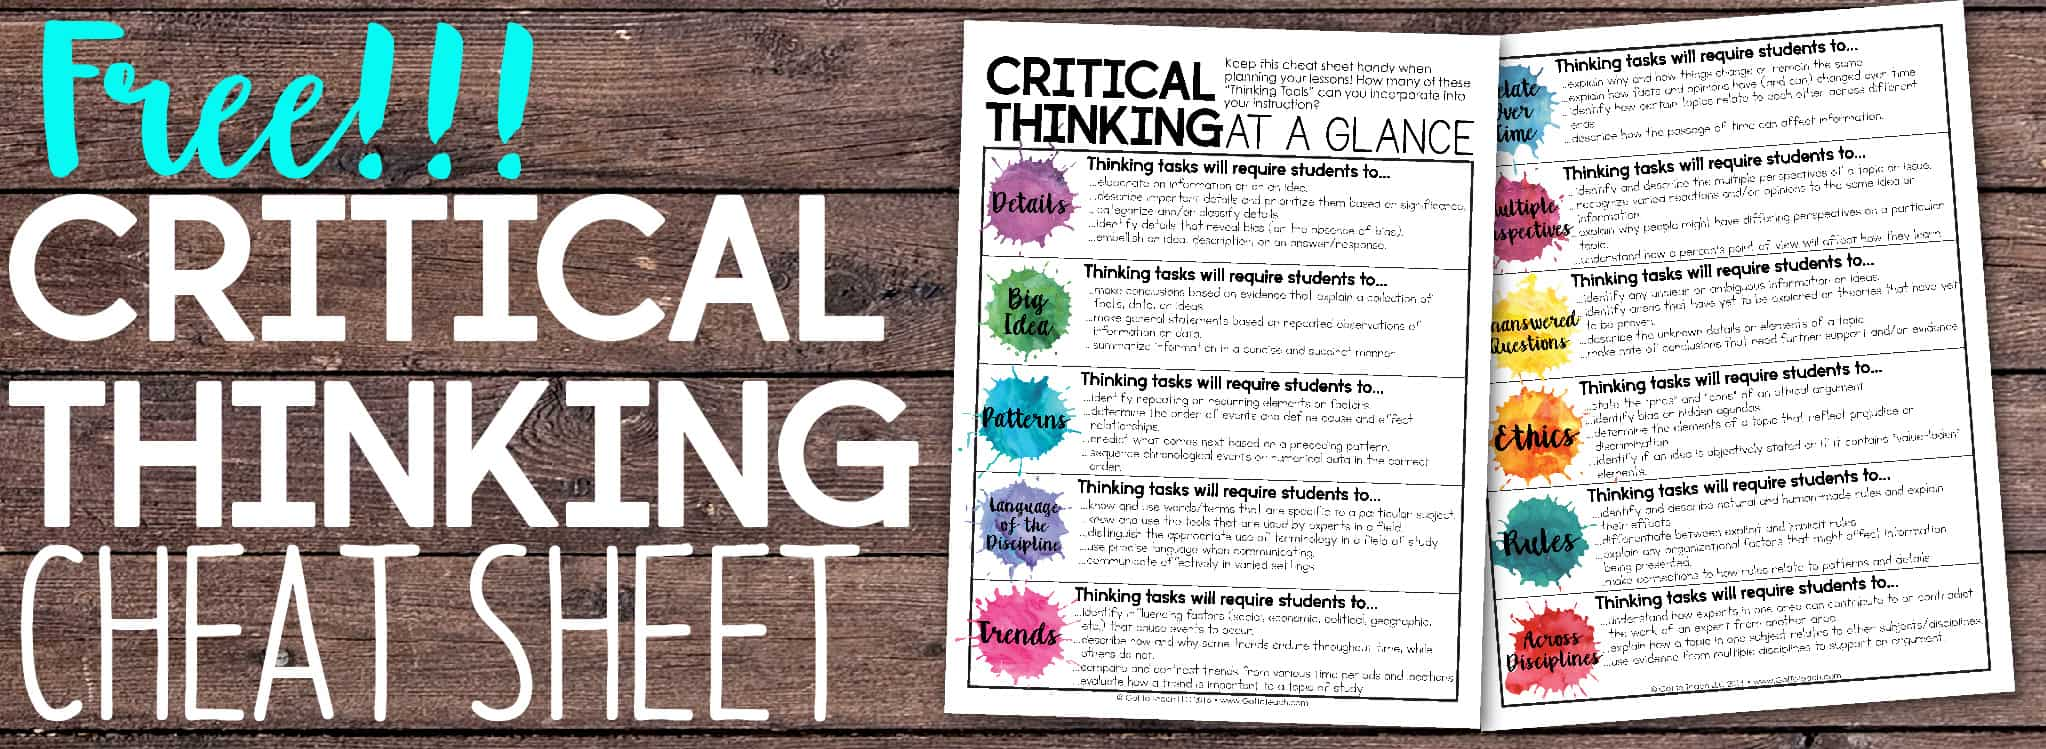 introduction to critical thinking powerpoint Critical thinking critical thinking the process we use to reflect on, assess and judge the assumptions underlying our own and others ideas and efforts.